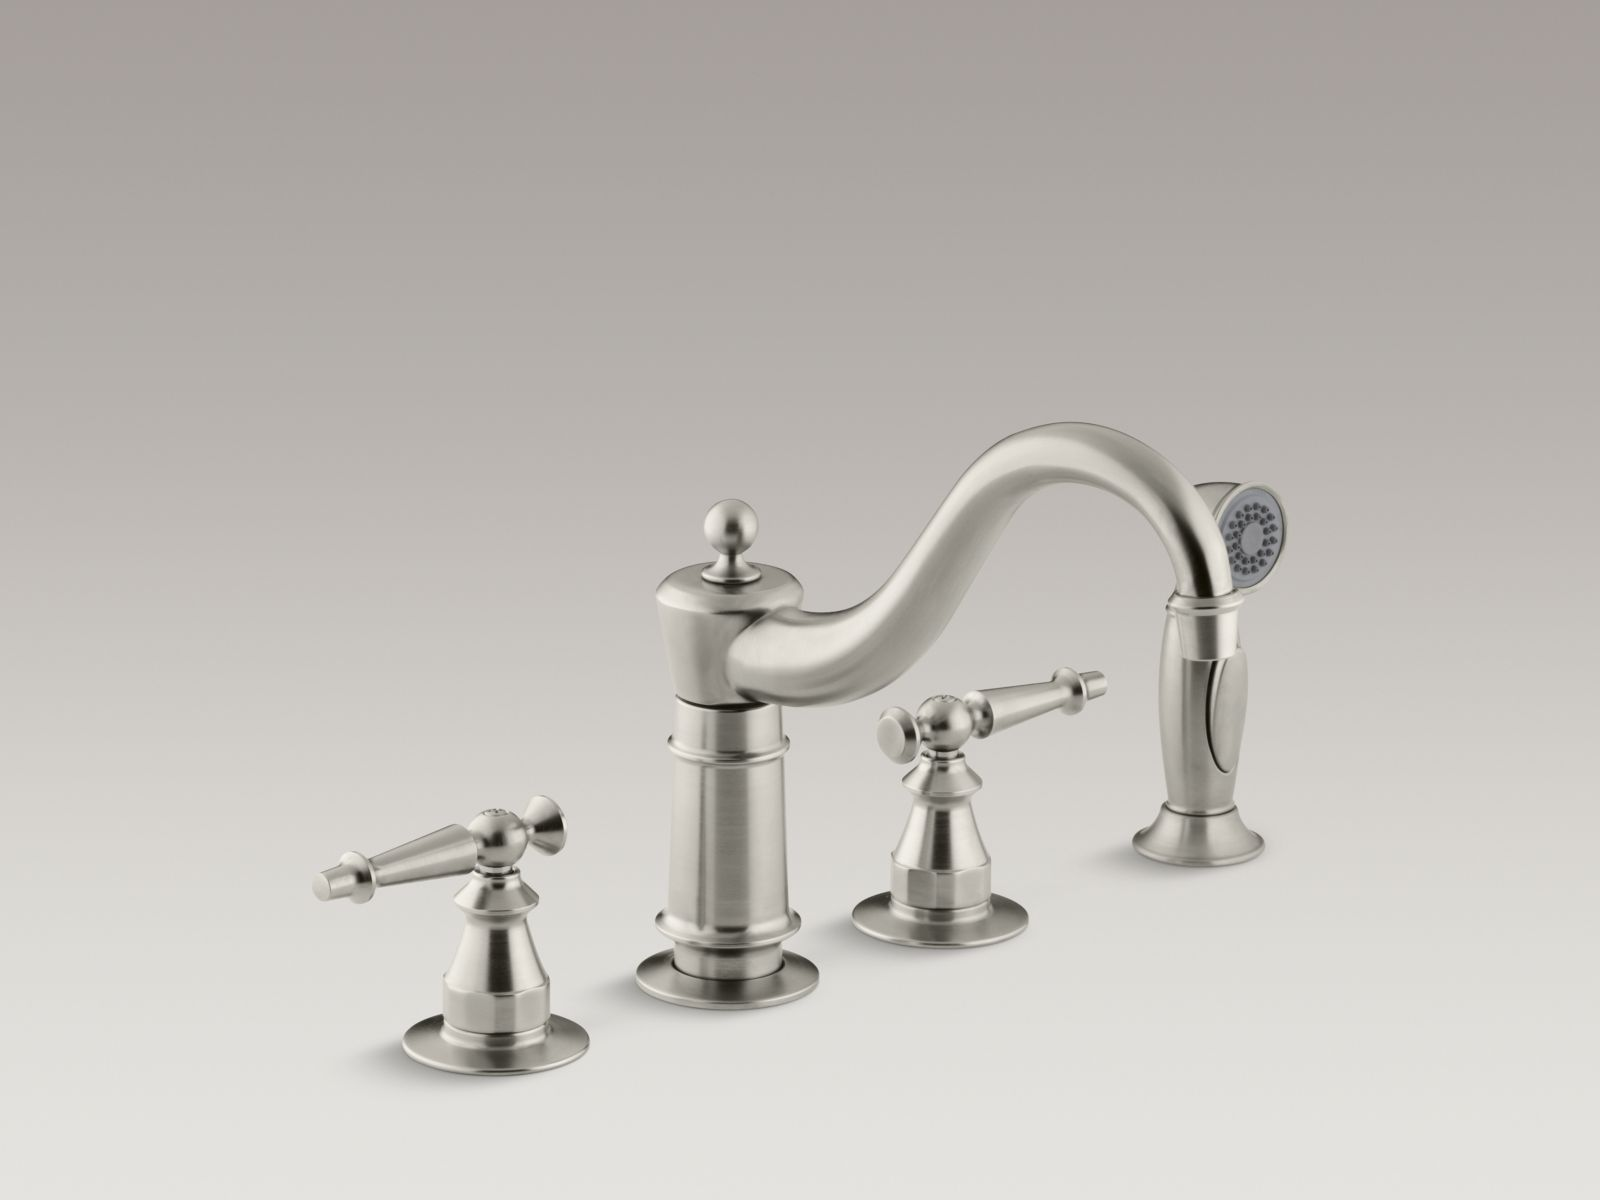 Kohler K-158-4-BN Antique Widespread Kitchen Faucet with Sidespray and Lever Handles Vibrant Brushed Nickel